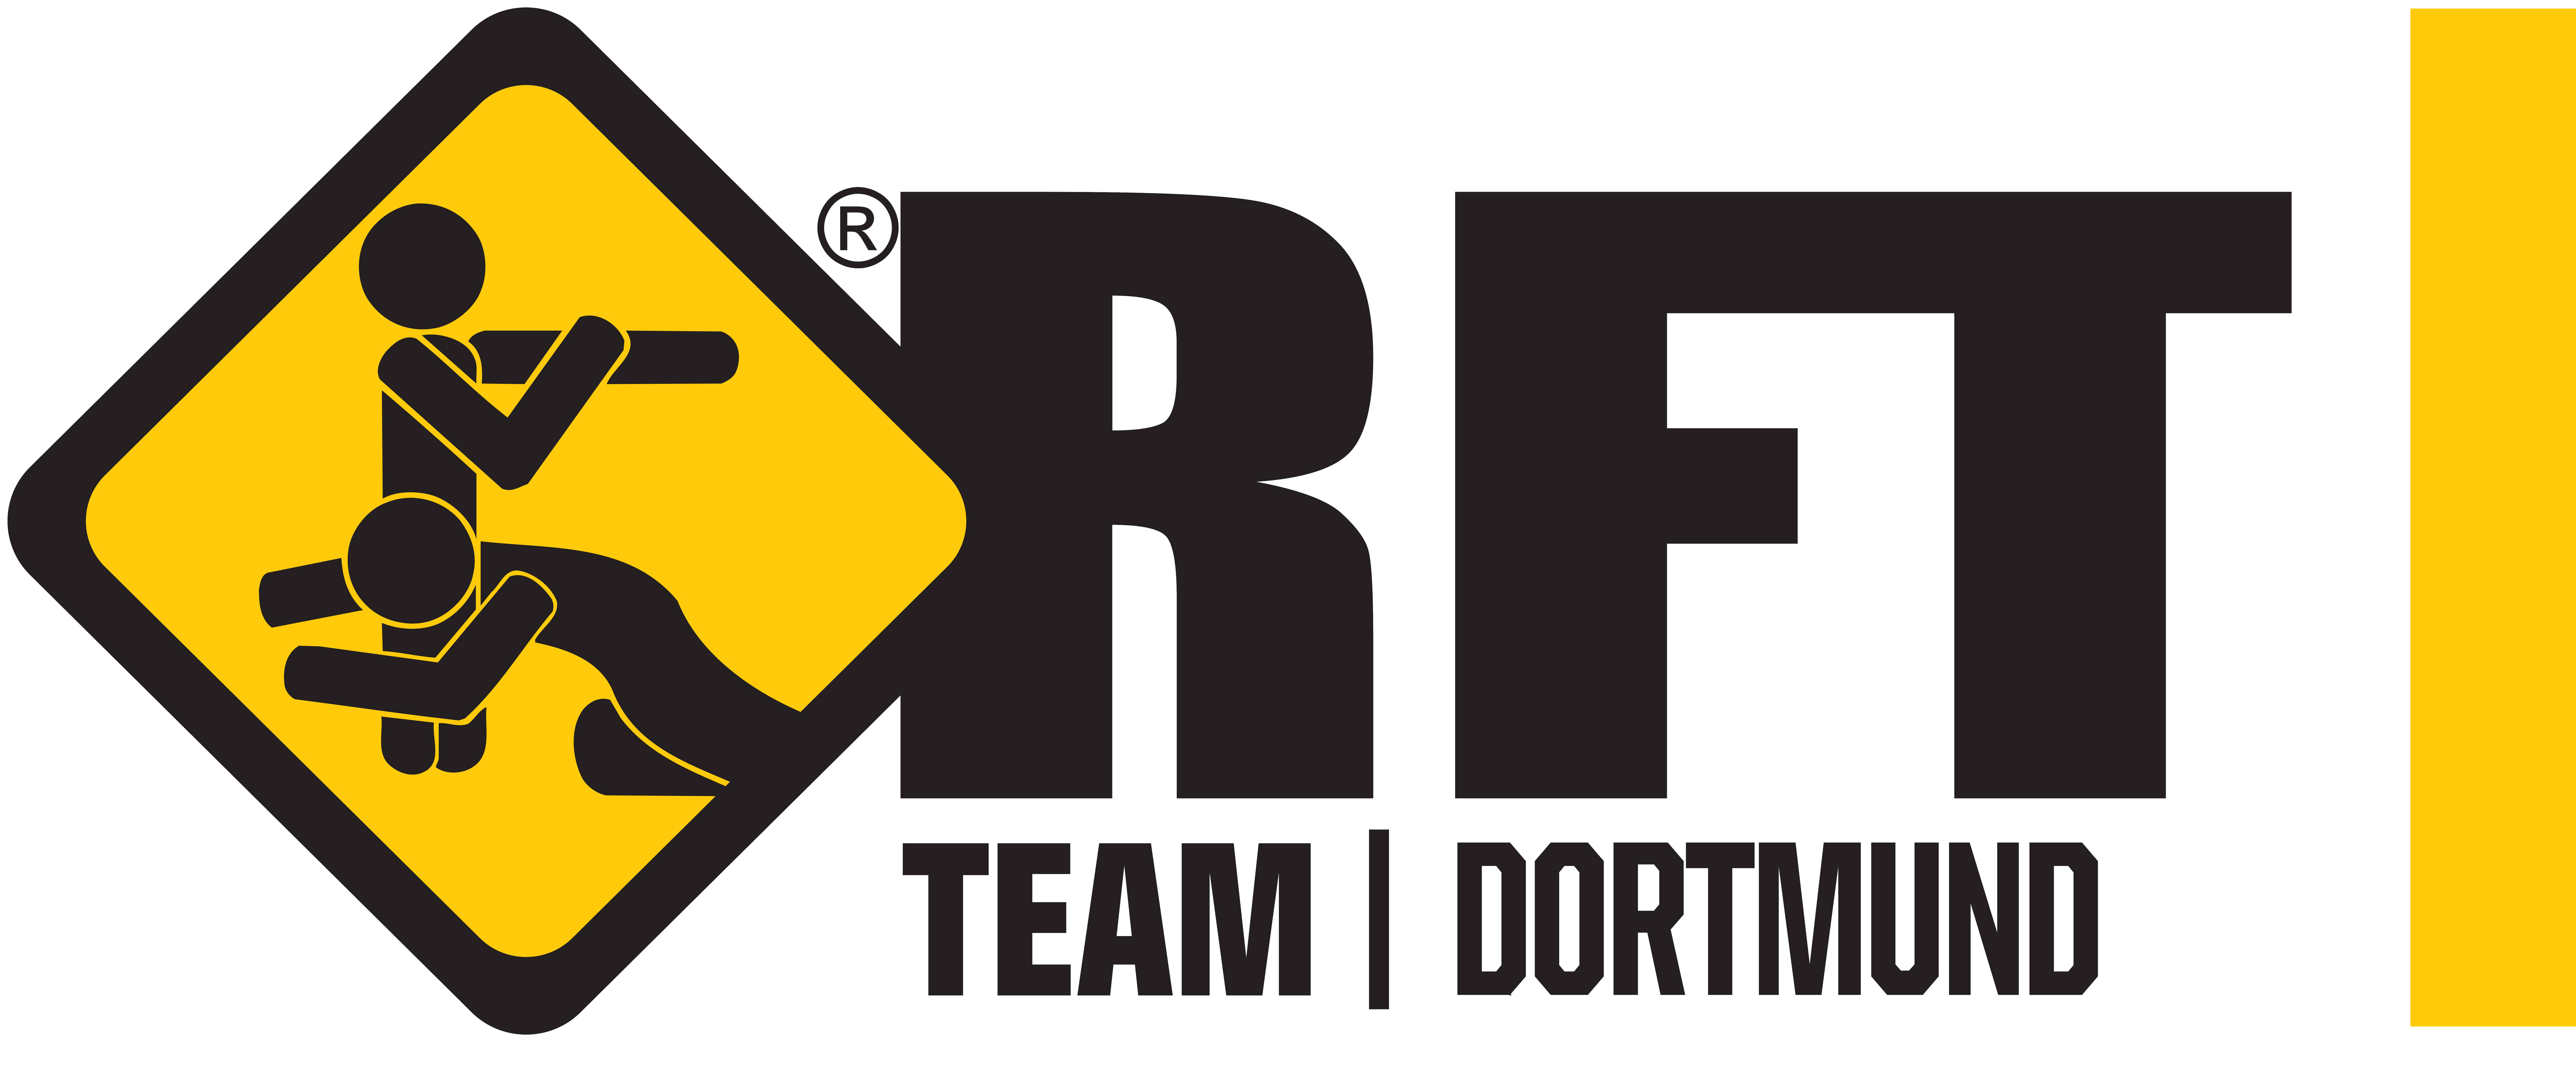 logo-rft-team-dortmund_full_2015